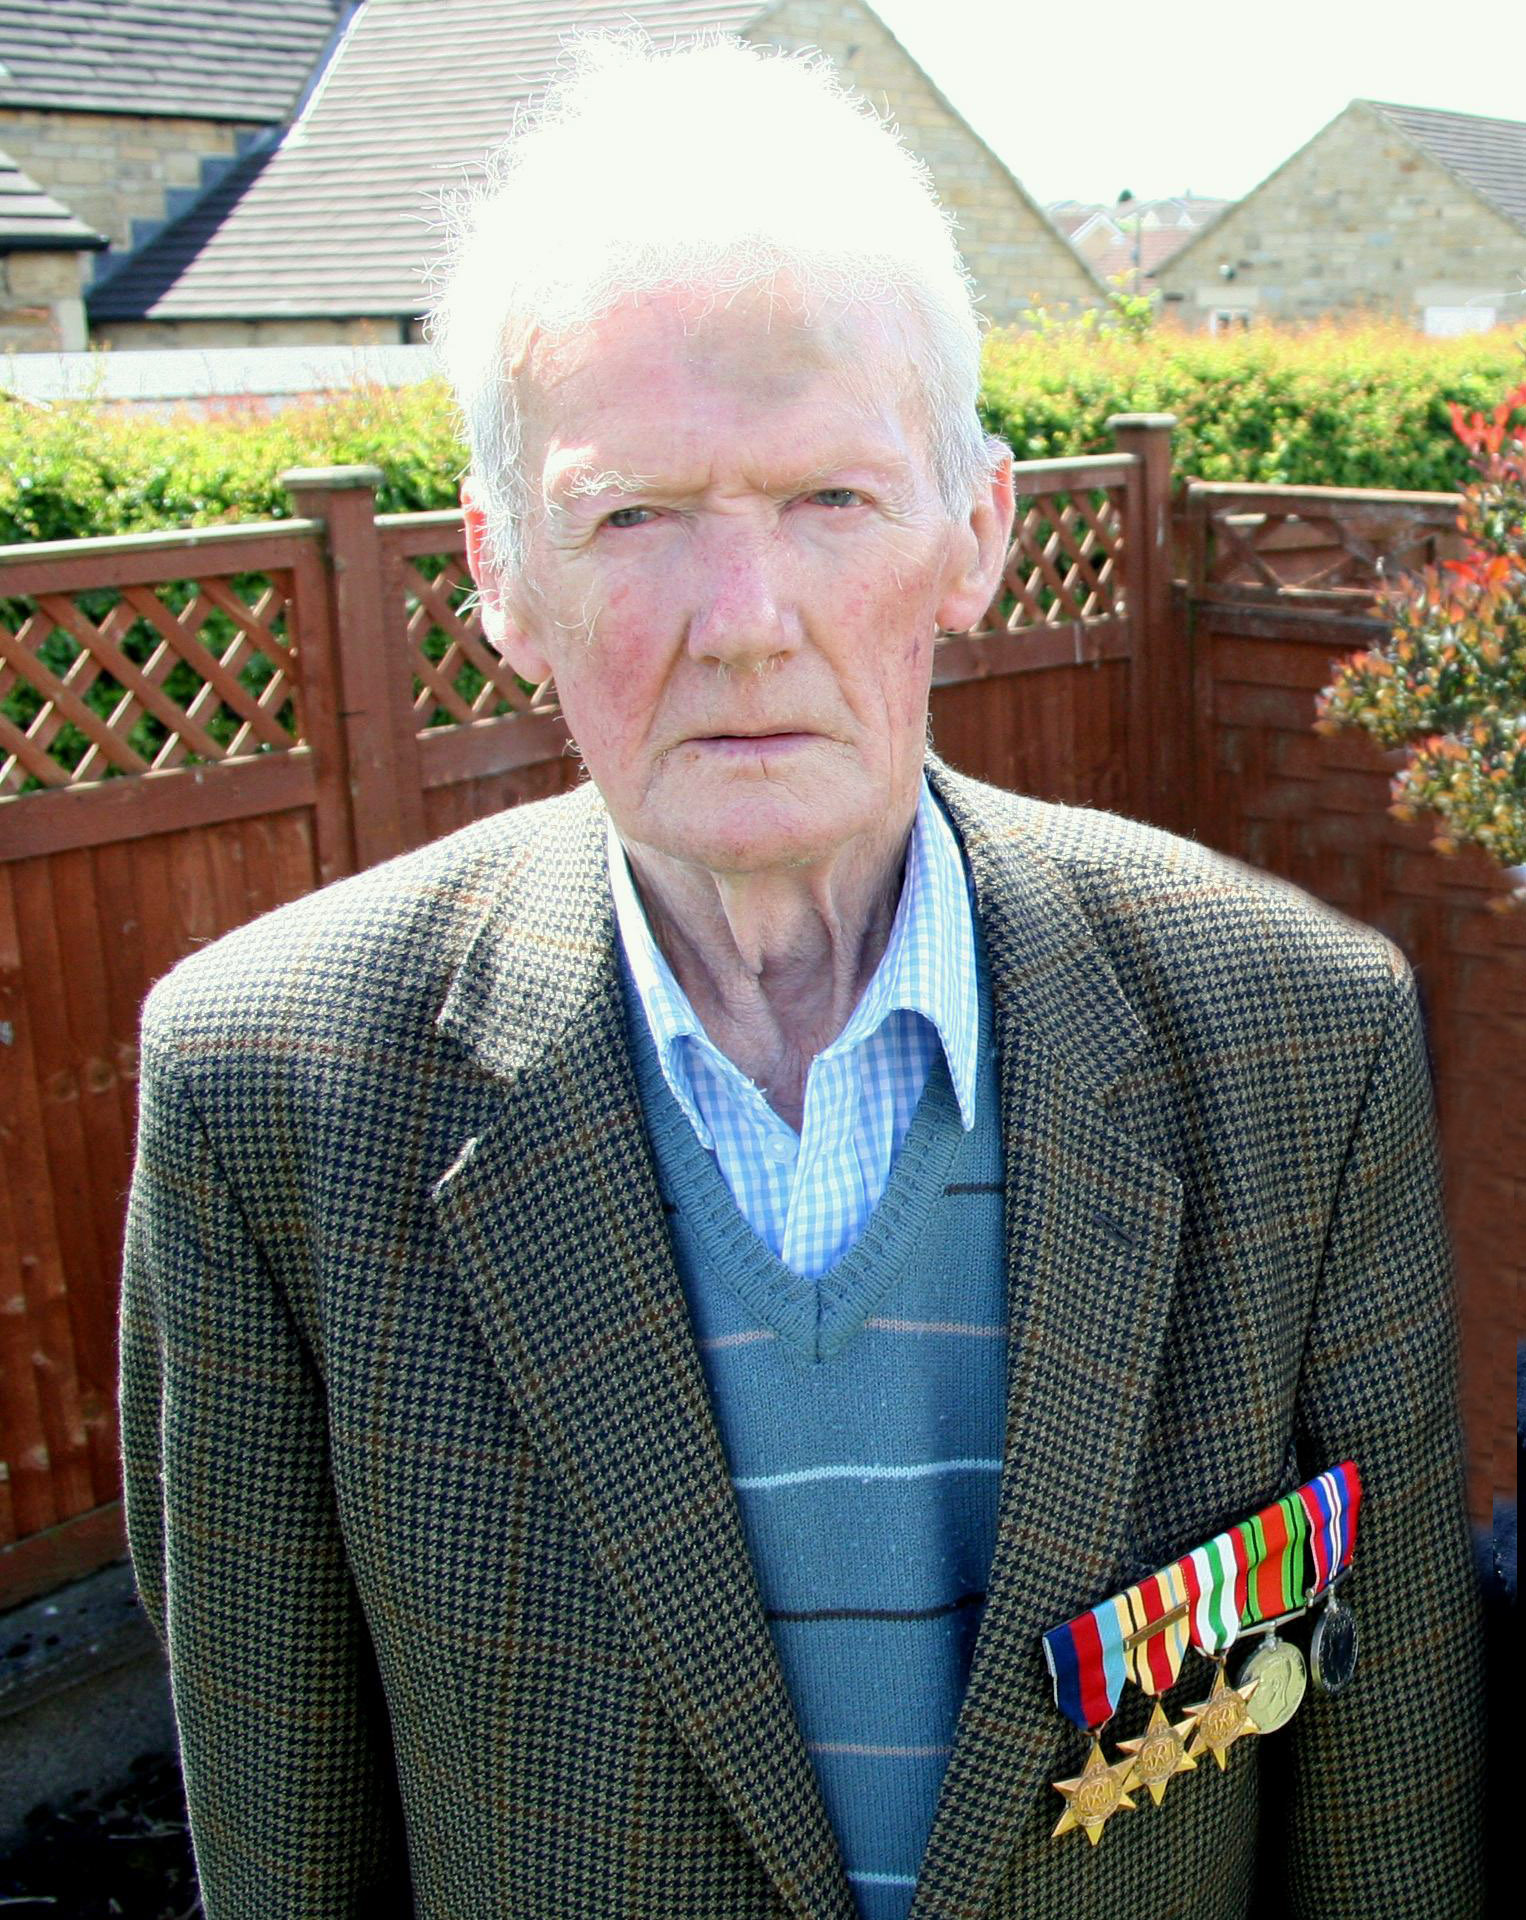 Dunkirk veteran Victor Clifford Dodd, known as Cliff